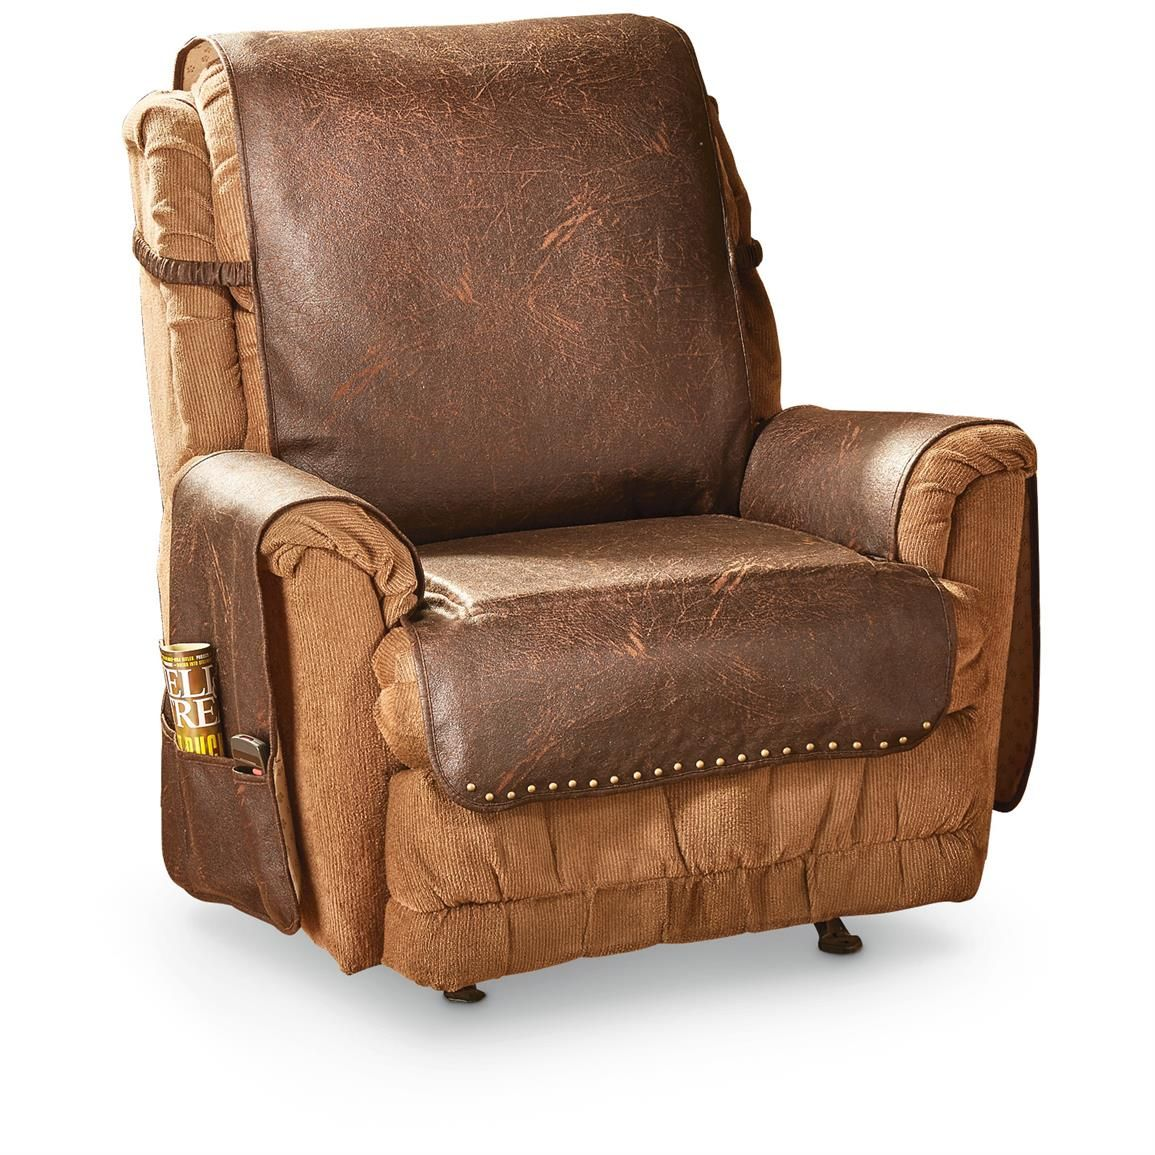 Faux Leather Recliner Cover, Cognac Recliner cover, Arm